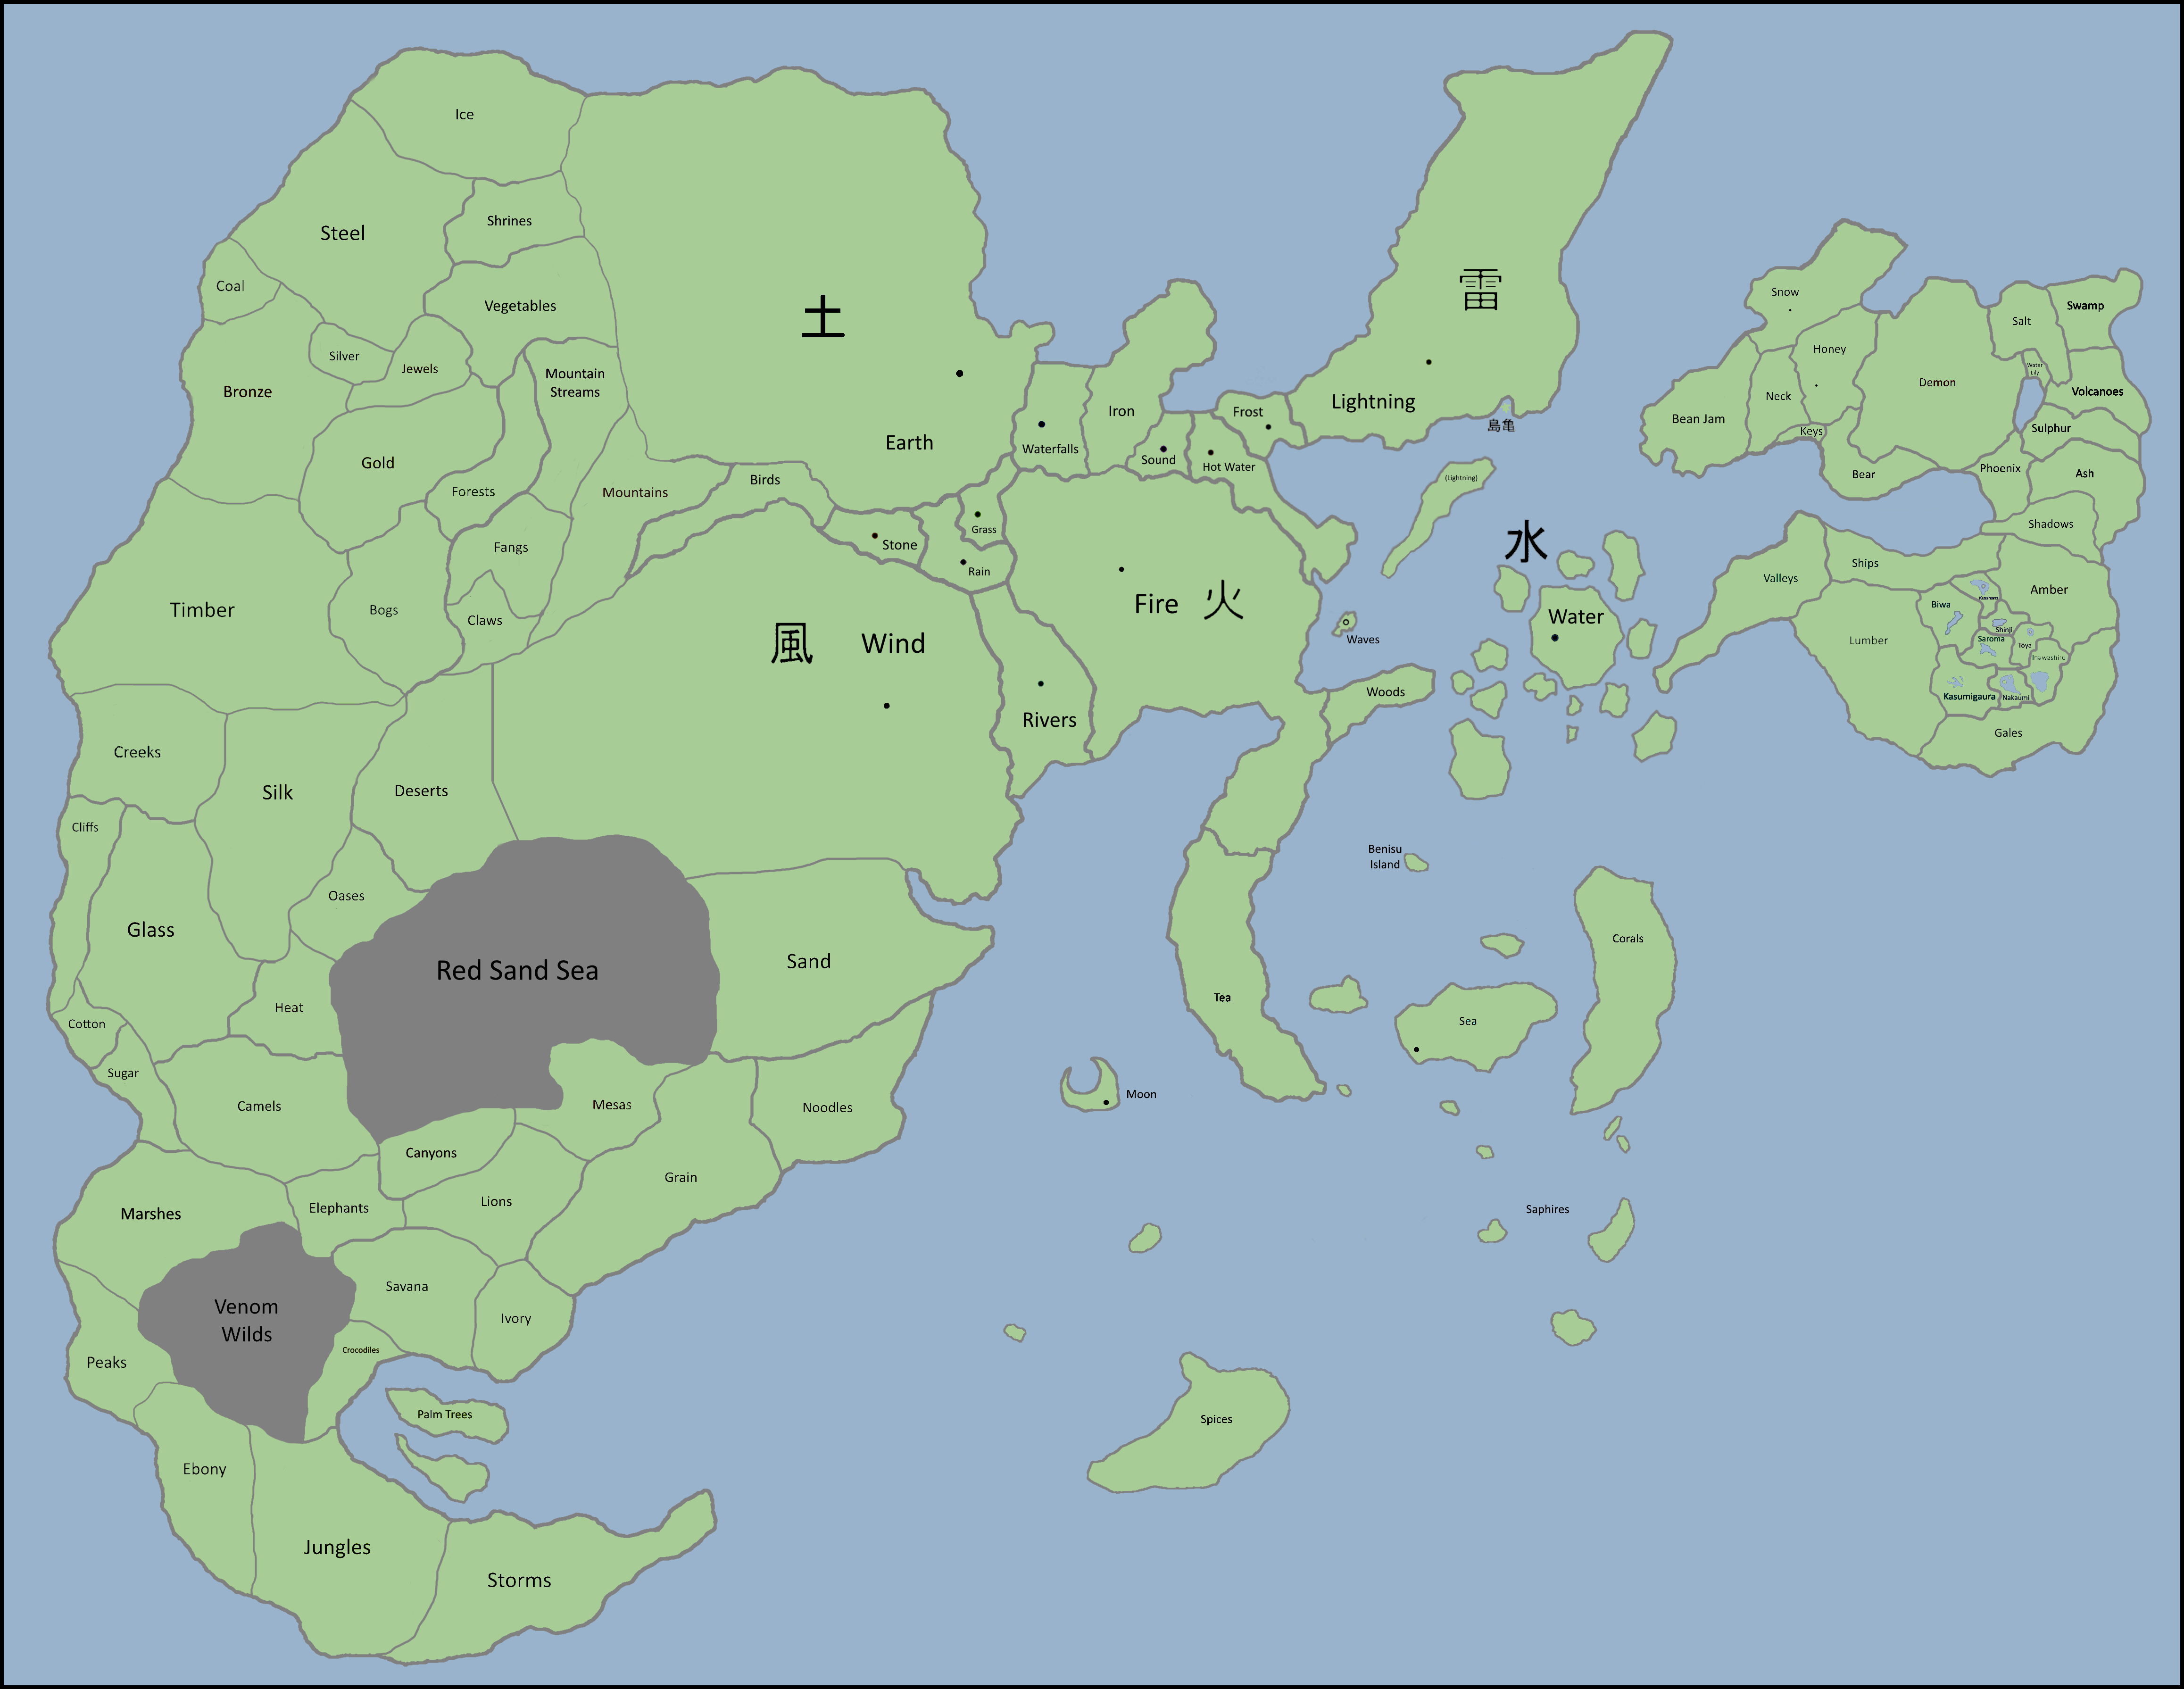 Naruto World Map Canon By Eruaniel On Deviantart Browse and download minecraft naruto maps by the planet minecraft community. deviantart